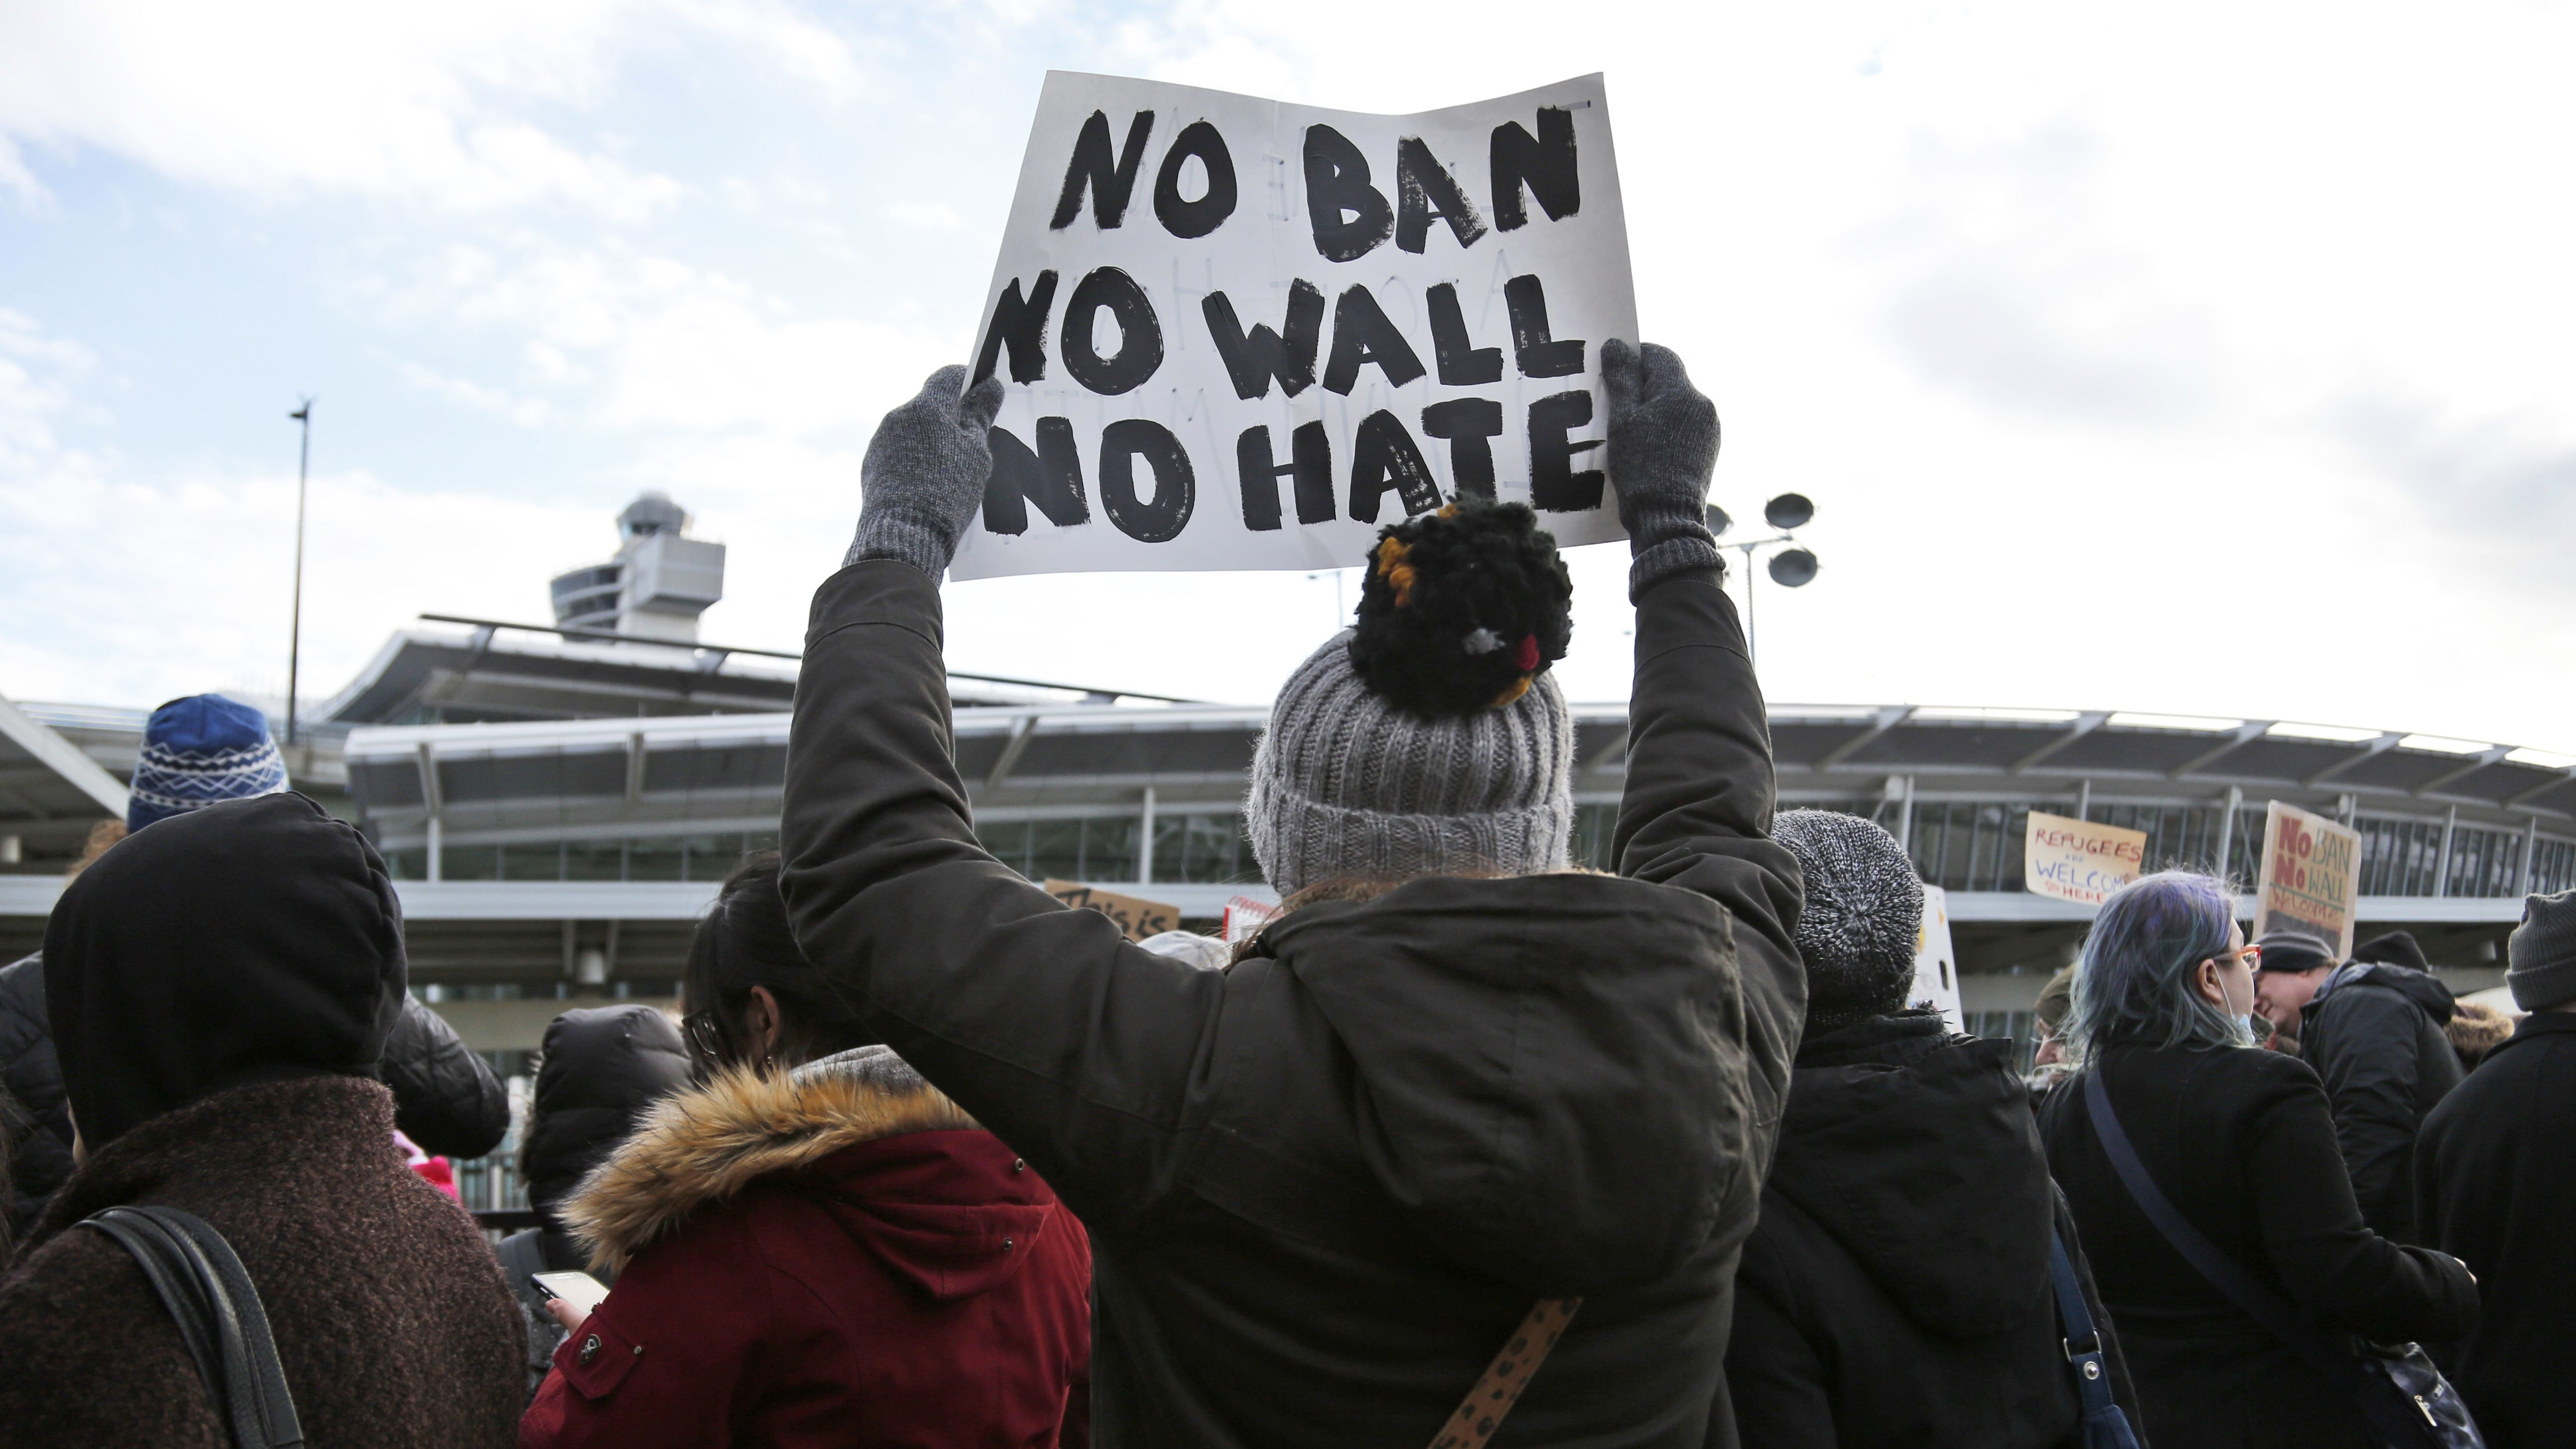 Protesters rally in front of John F. Kennedy International Airport in New York, Sunday, Jan. 29, 2017. President Donald Trump's immigration order sowed more chaos and outrage across the country Sunday, with travelers detained at airports, panicked families searching for relatives and protesters registering opposition to the sweeping measure that was blocked by several federal courts. (AP Photo/Seth Wenig)